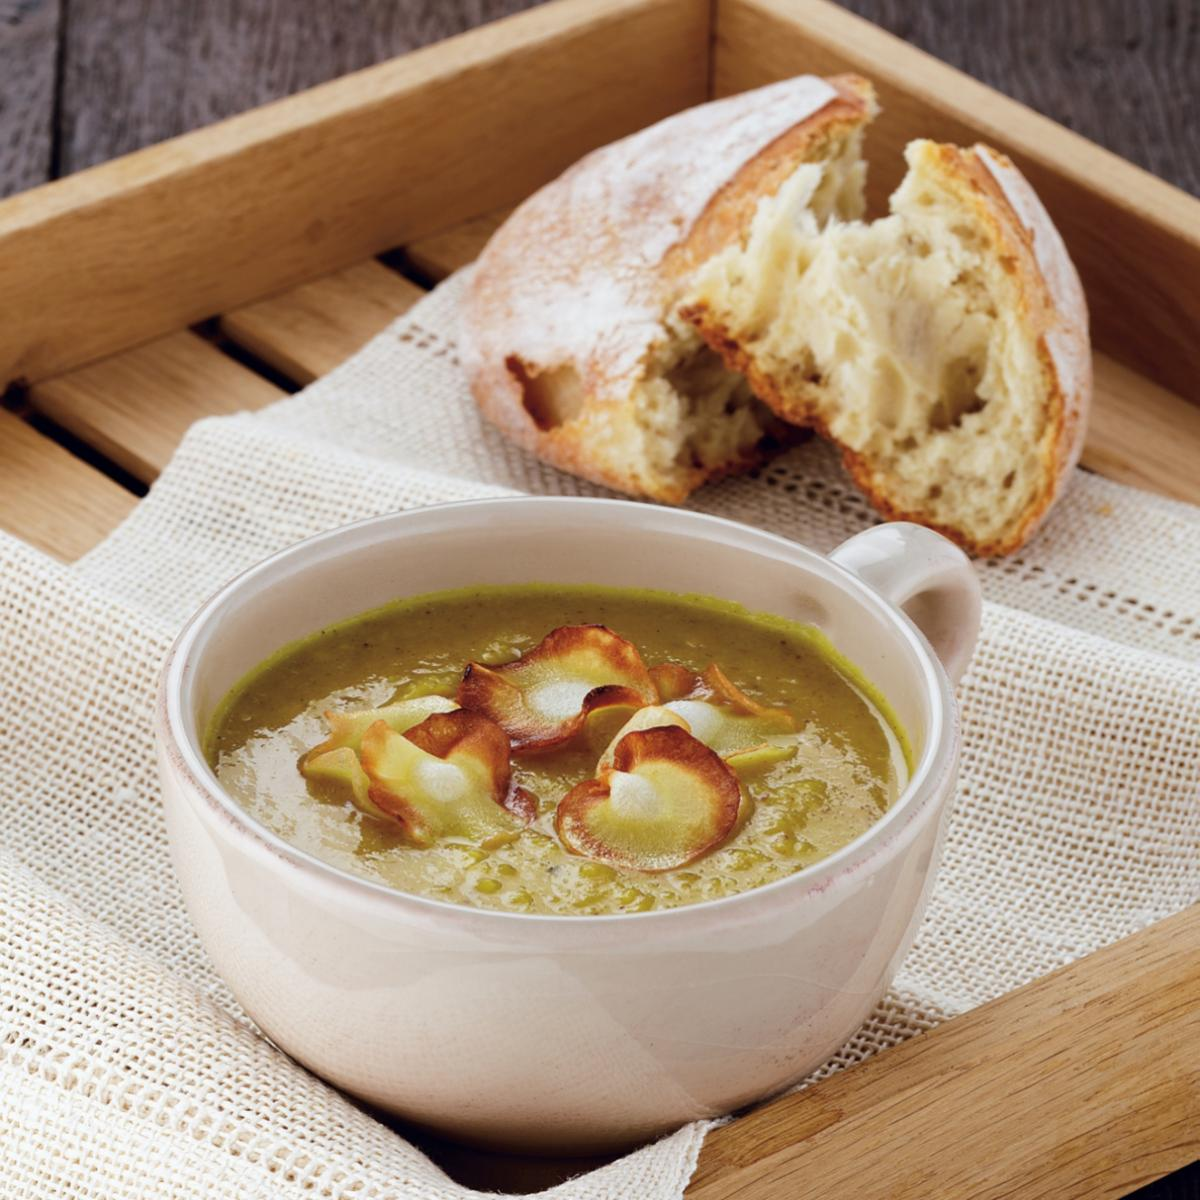 A picture of Delia's Curried Parsnip and Apple Soup with Parsnip Crisps recipe